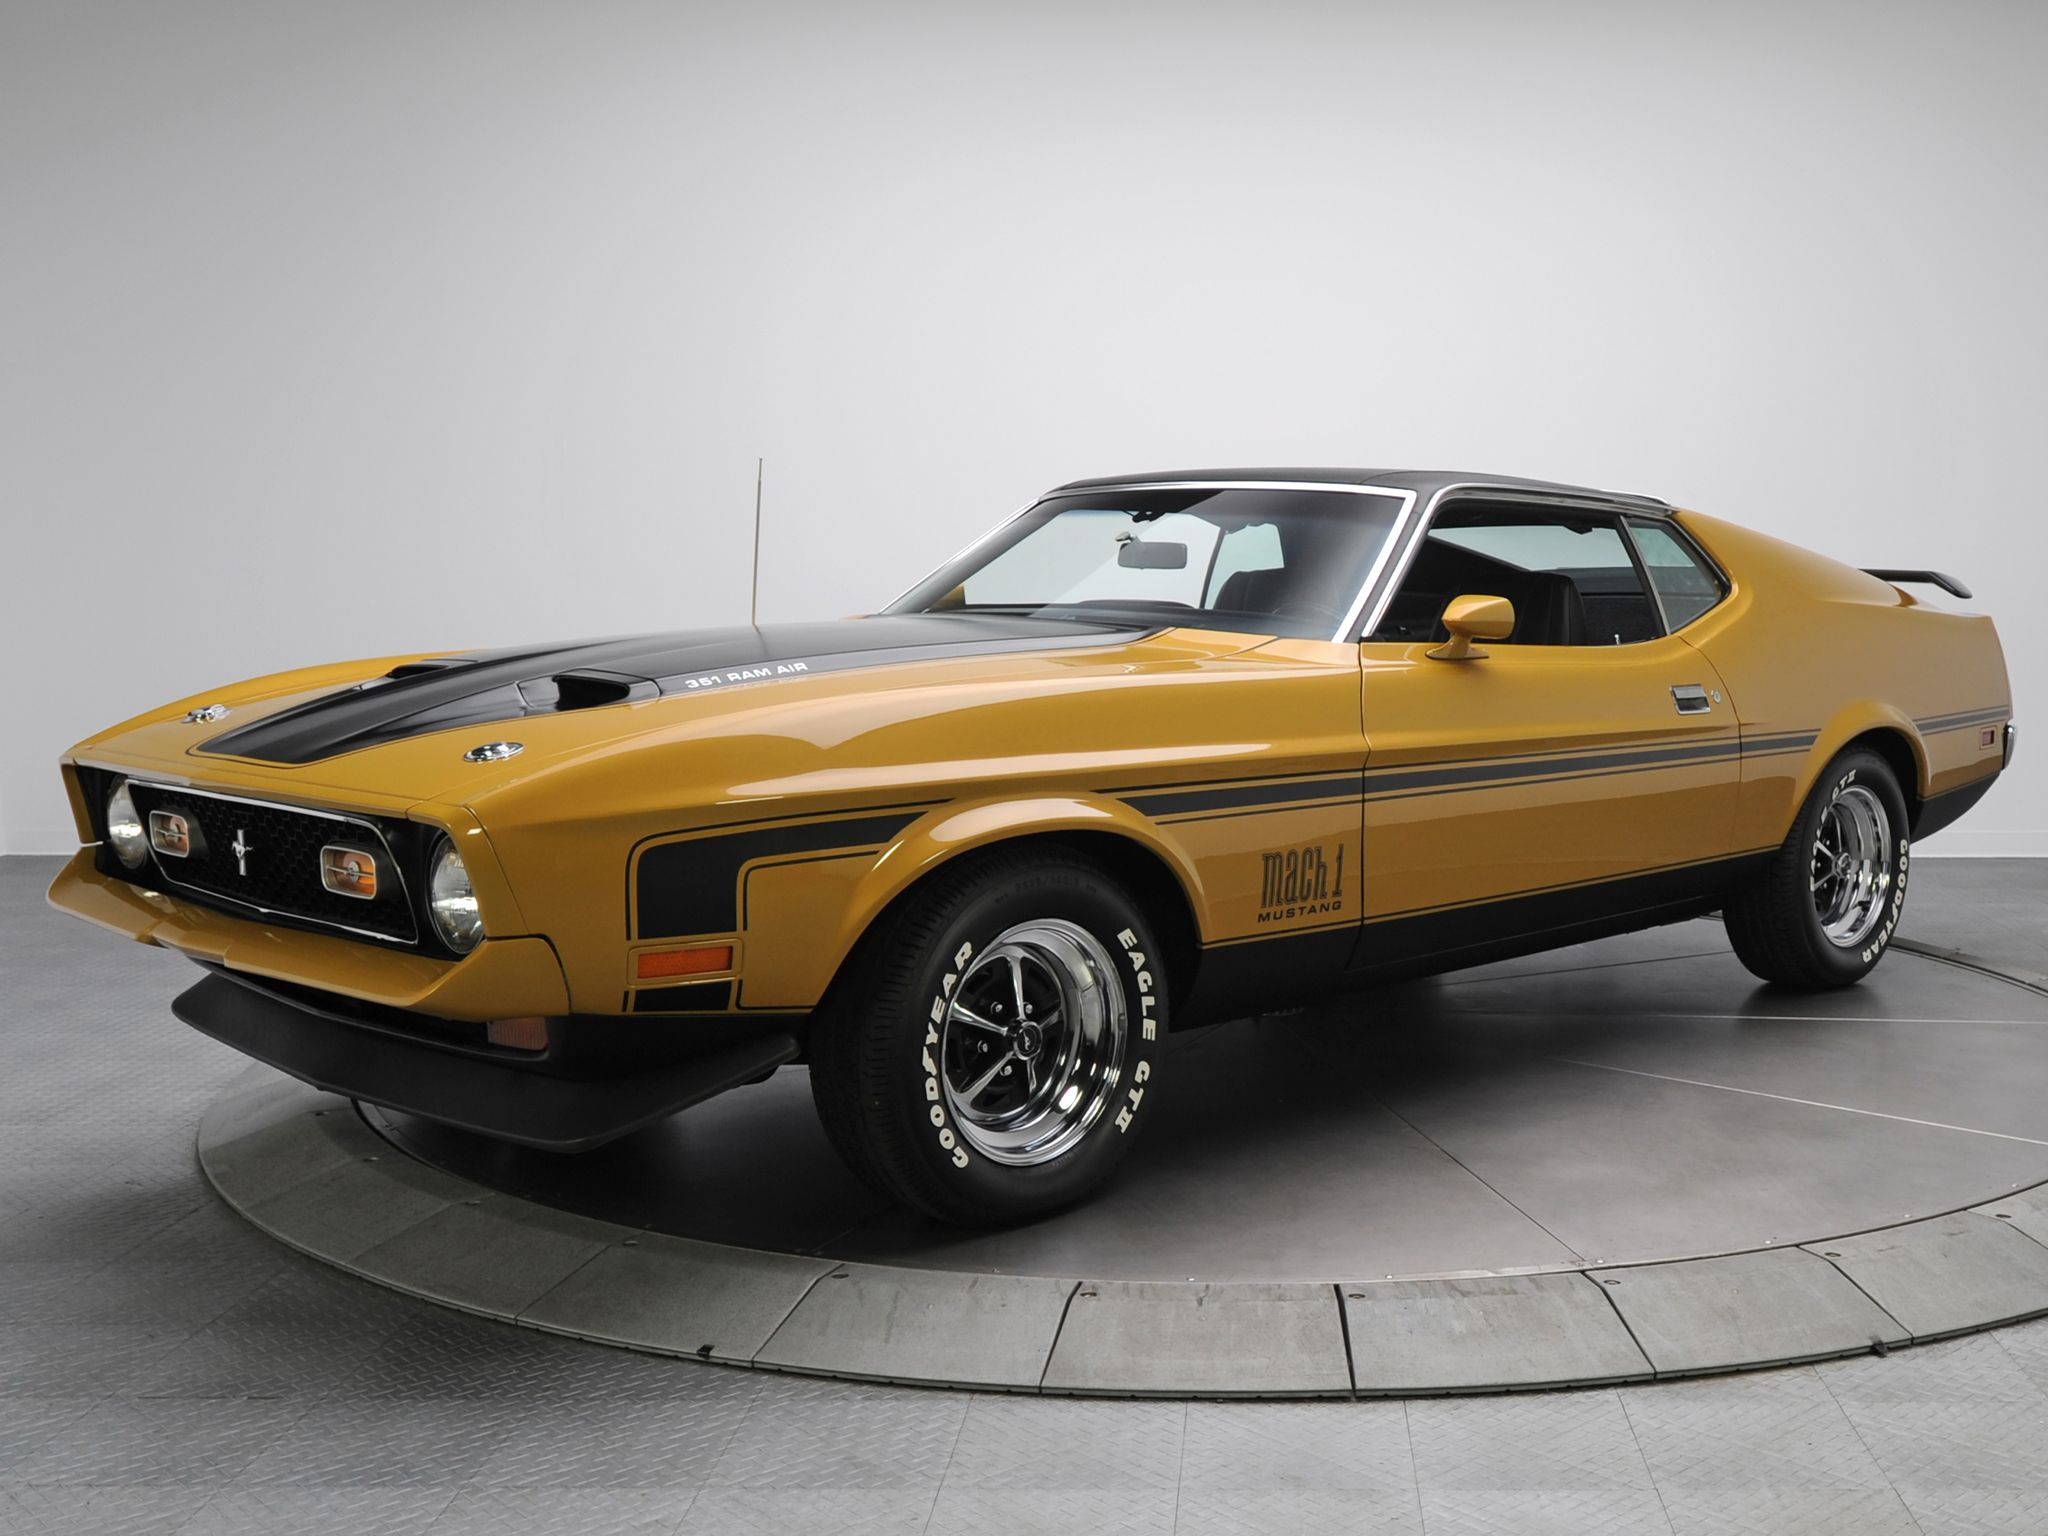 1971 mustang mach 1 1971 ford mustang mach 1 classic car